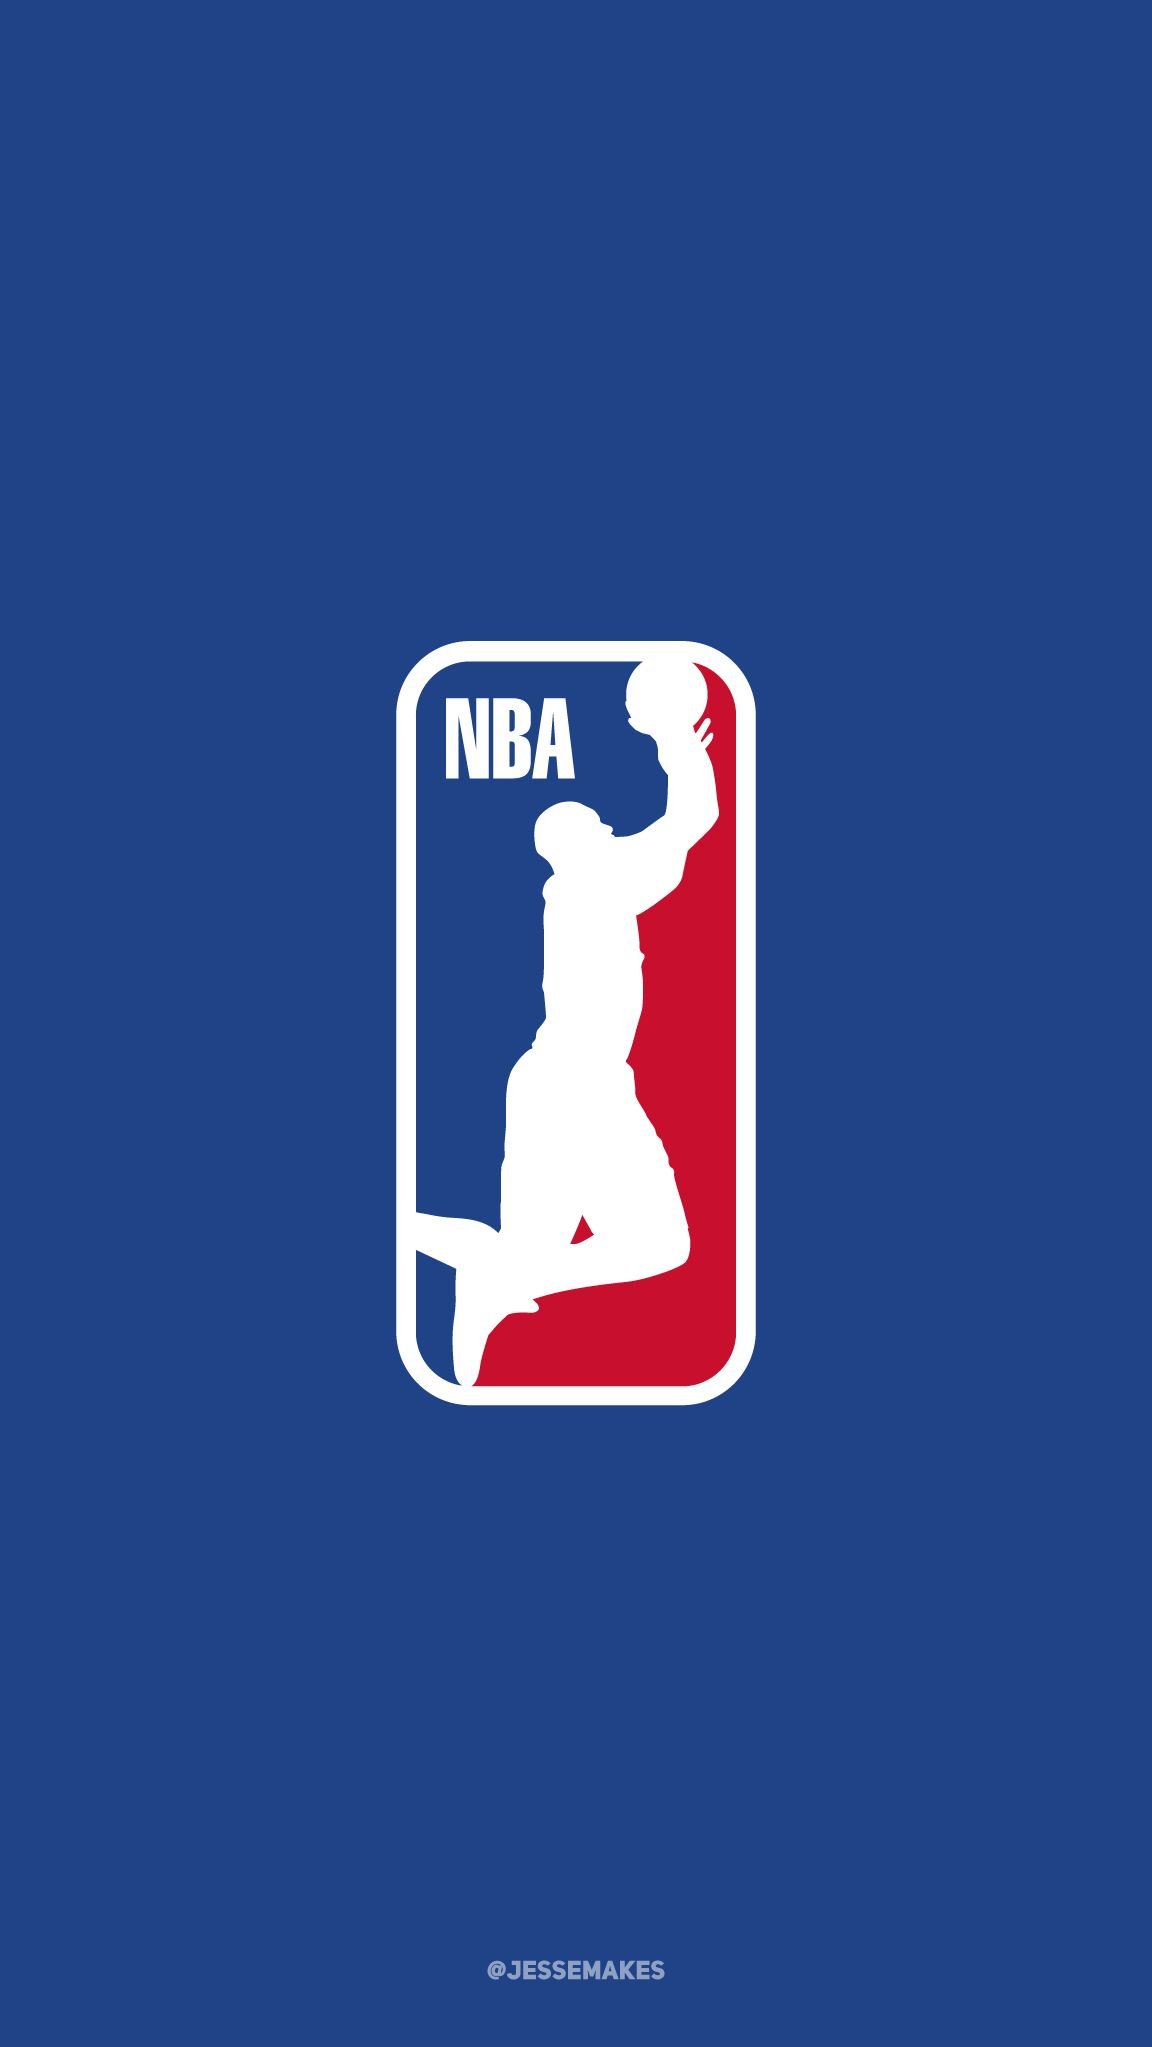 Dwyane Wade as the subject of the NBA logo  Part of my NBA